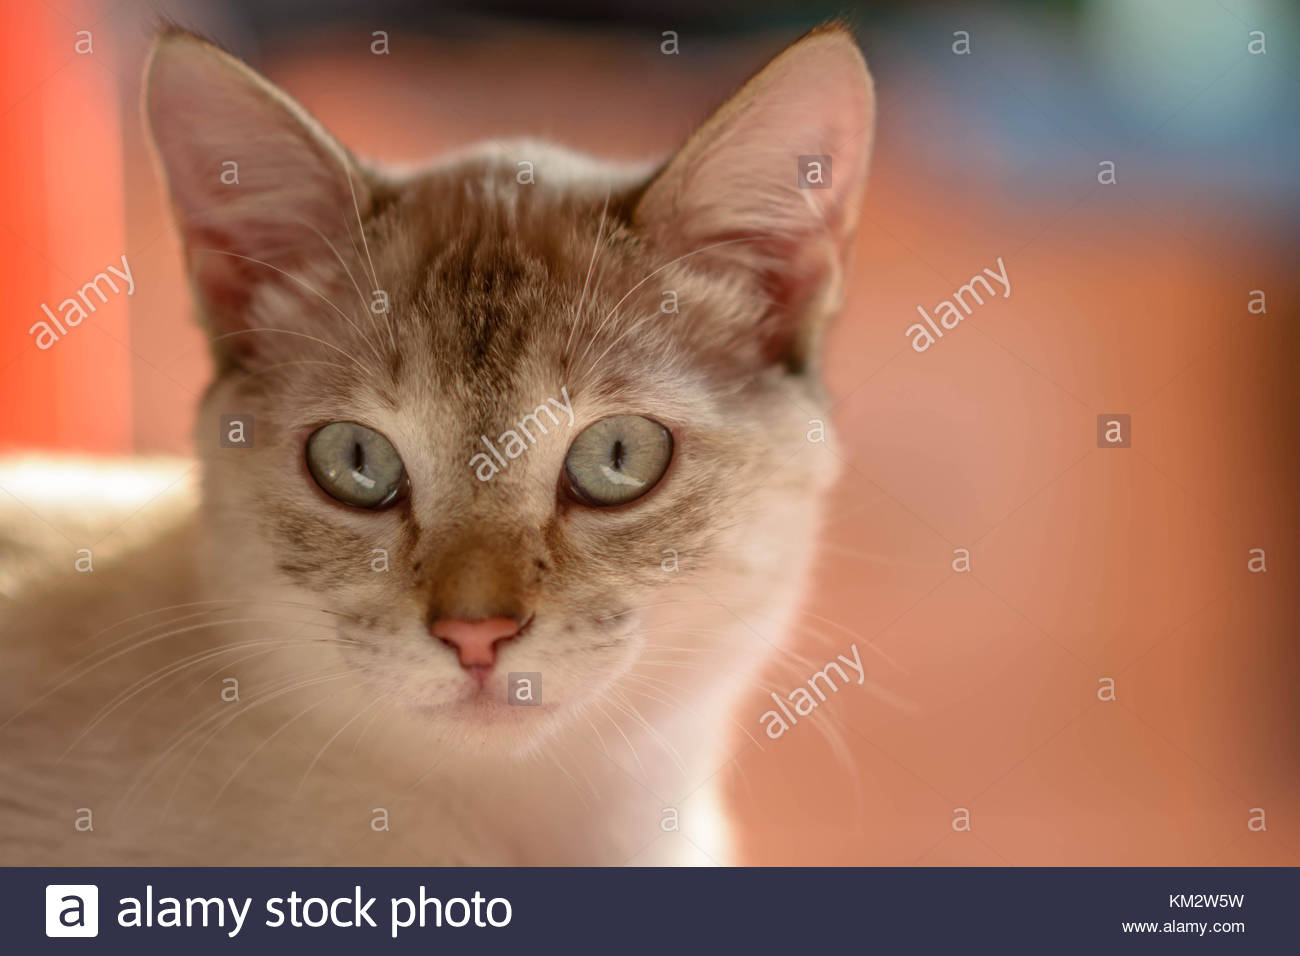 Common female cat watching directly at us with green intense eyes - Stock Image